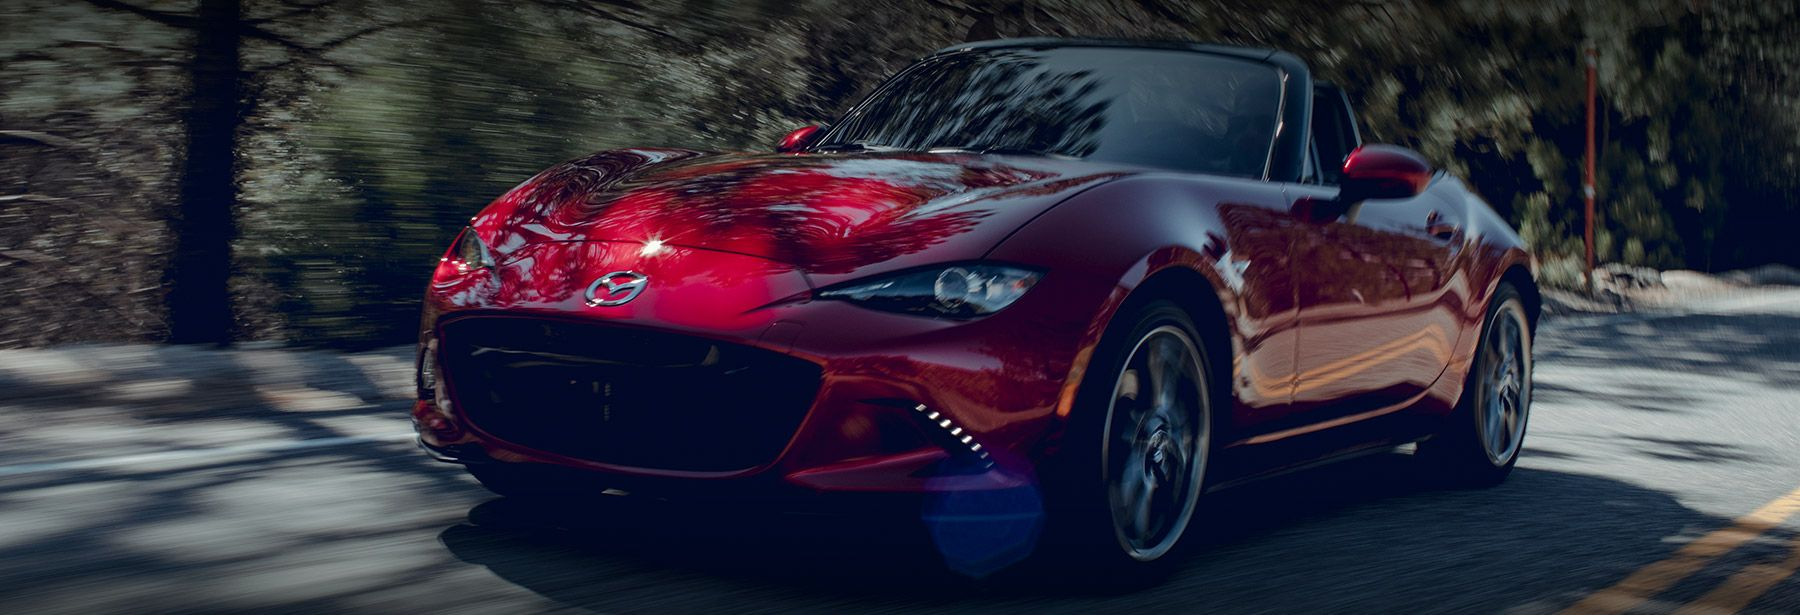 2019 Mazda MX-5 Miata RF for Sale near Sacramento, CA